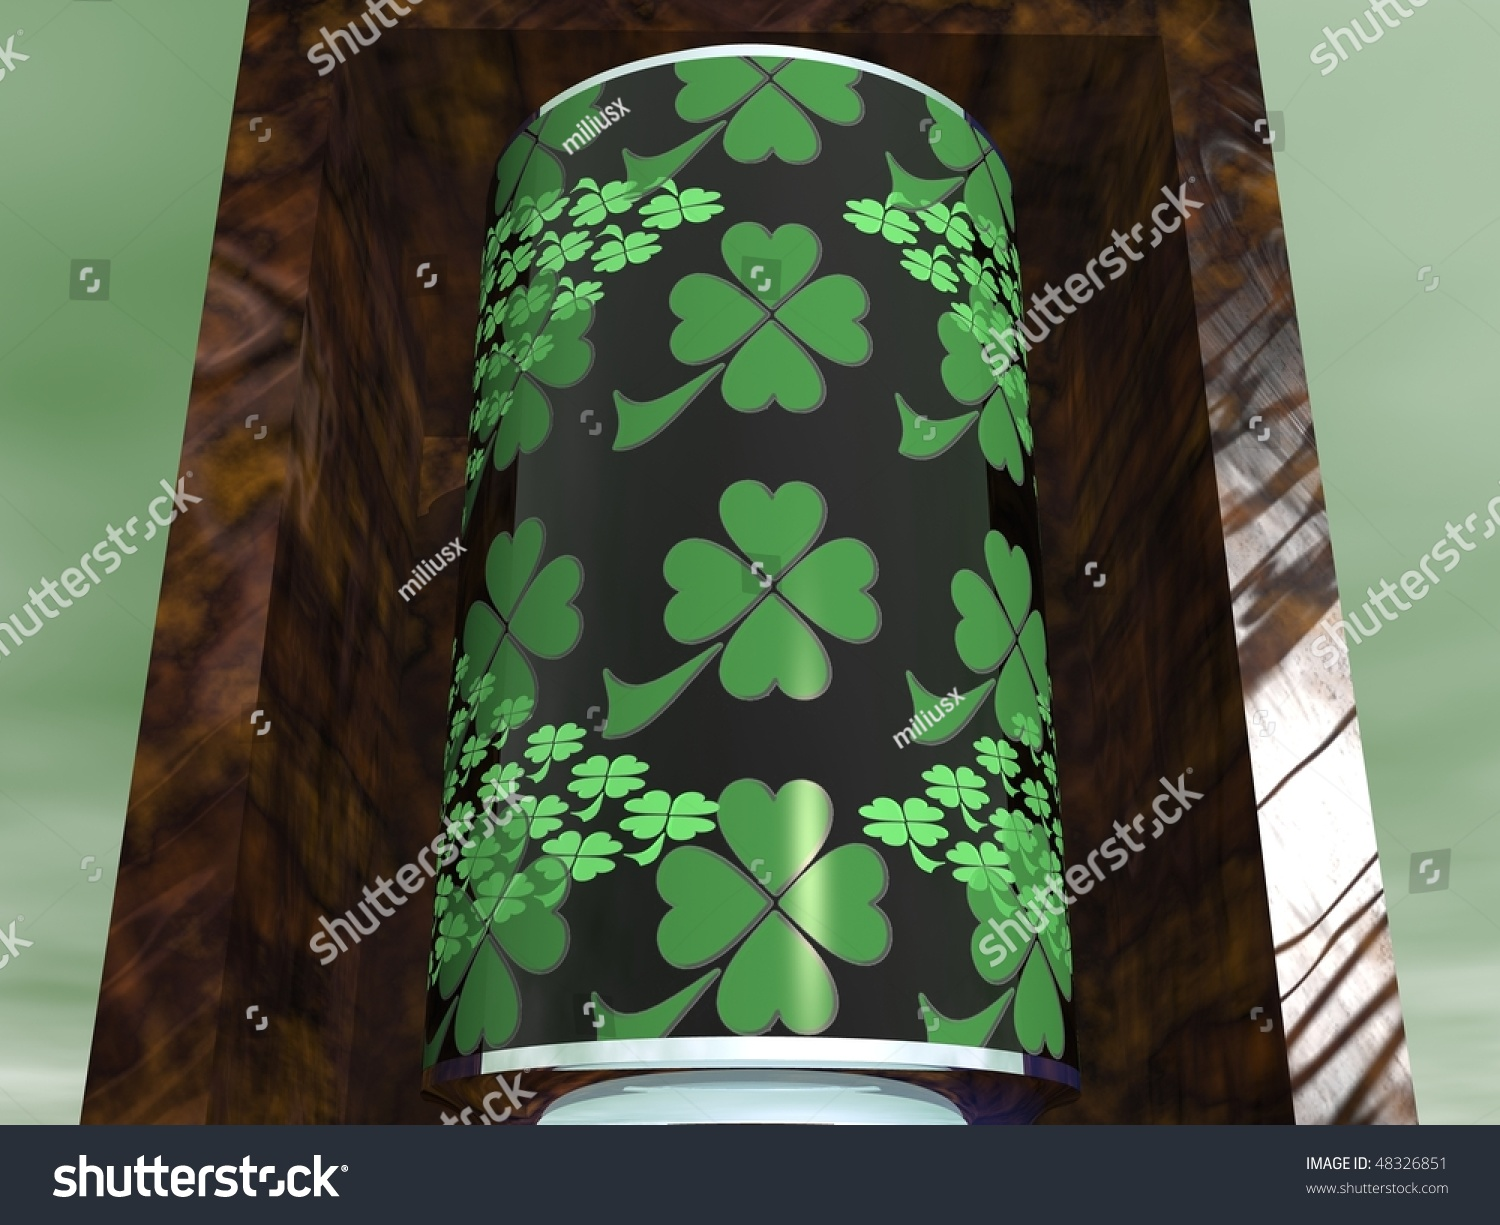 st patricks day patterned tin can wooden stock illustration 48326851